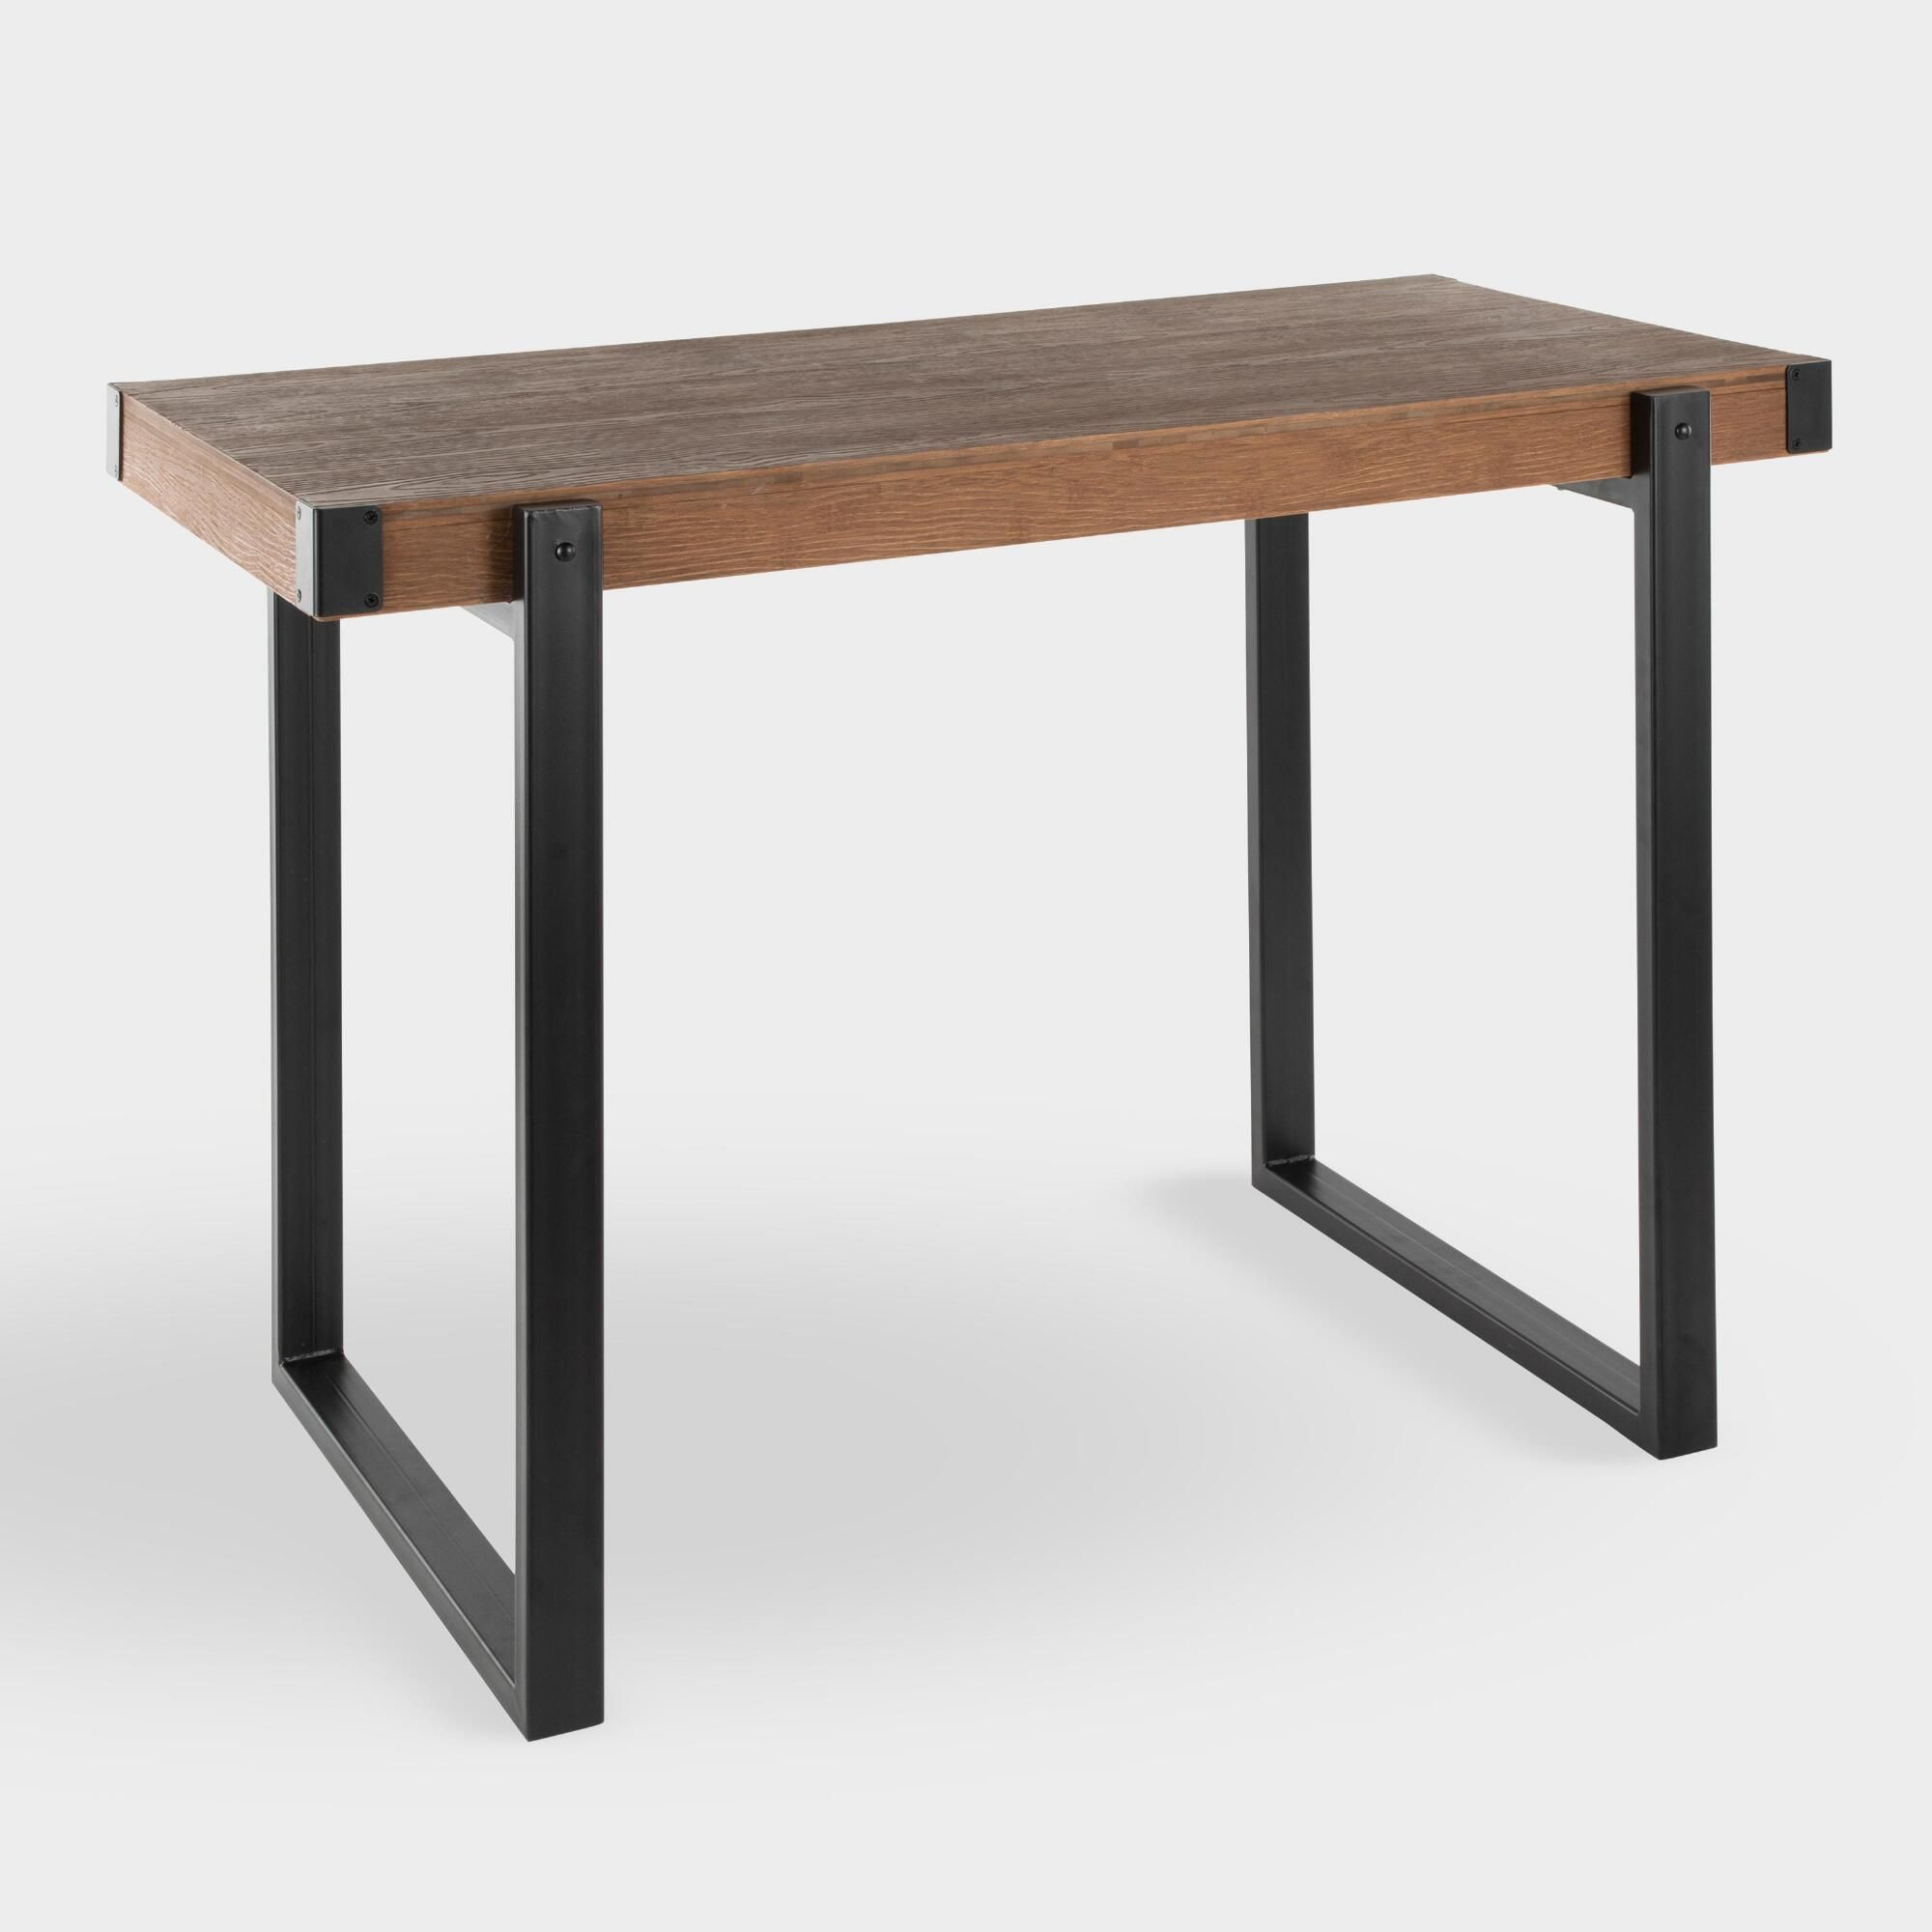 Metal And Wood Langdon Counter Height Table By World Market Counter Height Table Dining Table Black Rustic Dining Room Table